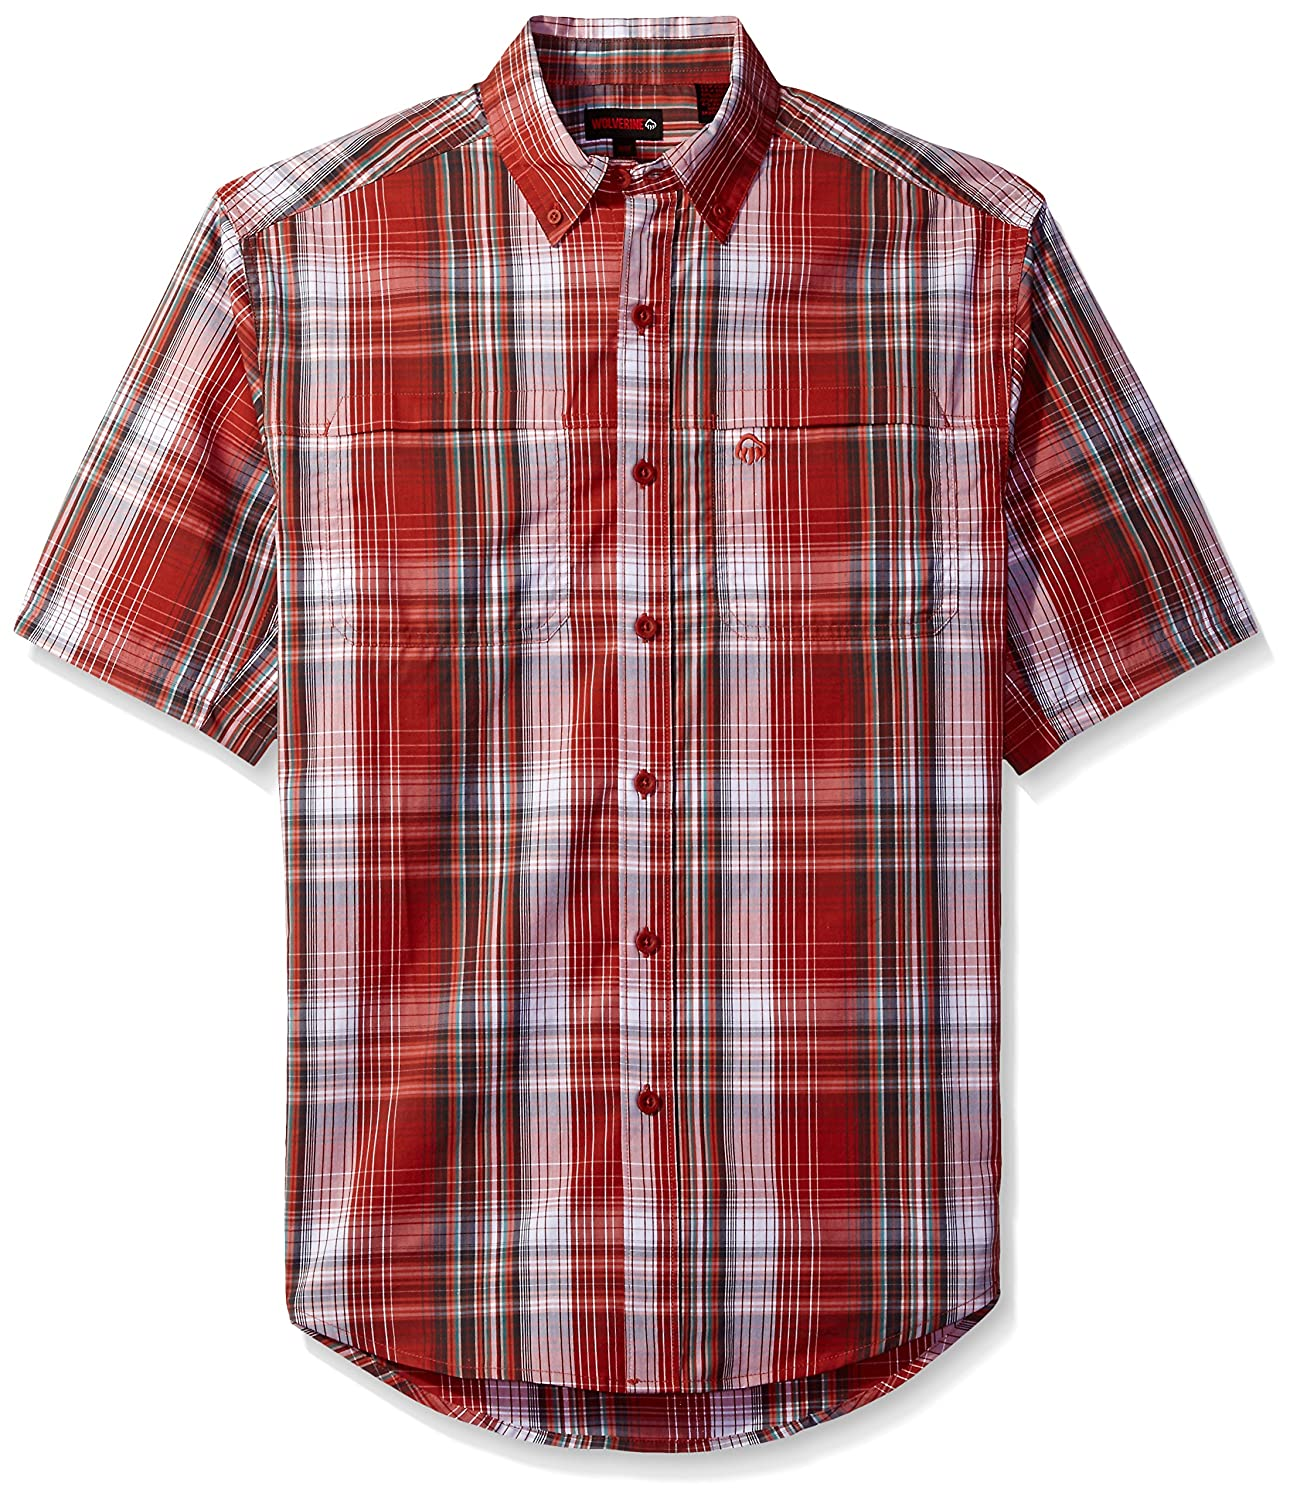 Wolverine SHIRT メンズ B01N0DVONC Large|Barn Red Plaid Barn Red Plaid Large